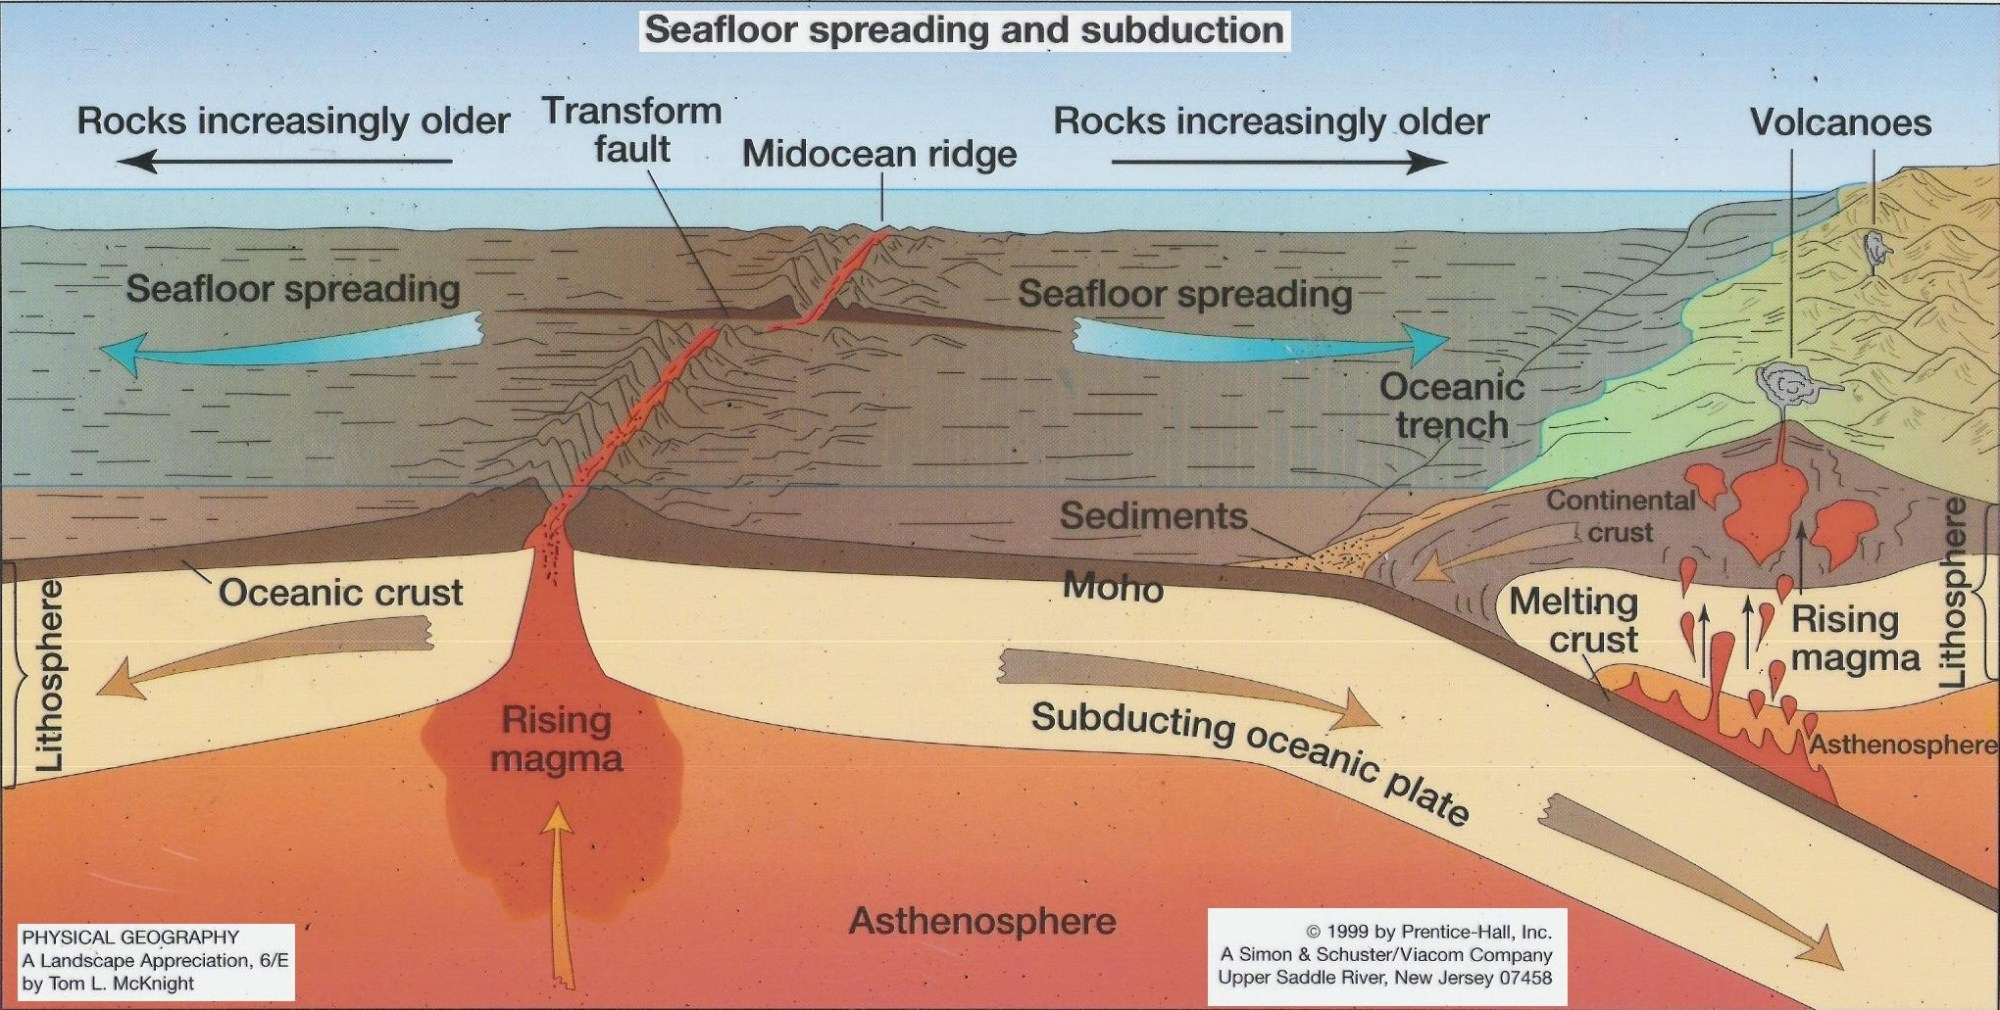 hight resolution of sea floor spreading is the process in which the ocean floor is extended when two plates move apart diverge as the plates move apart the rocks break and